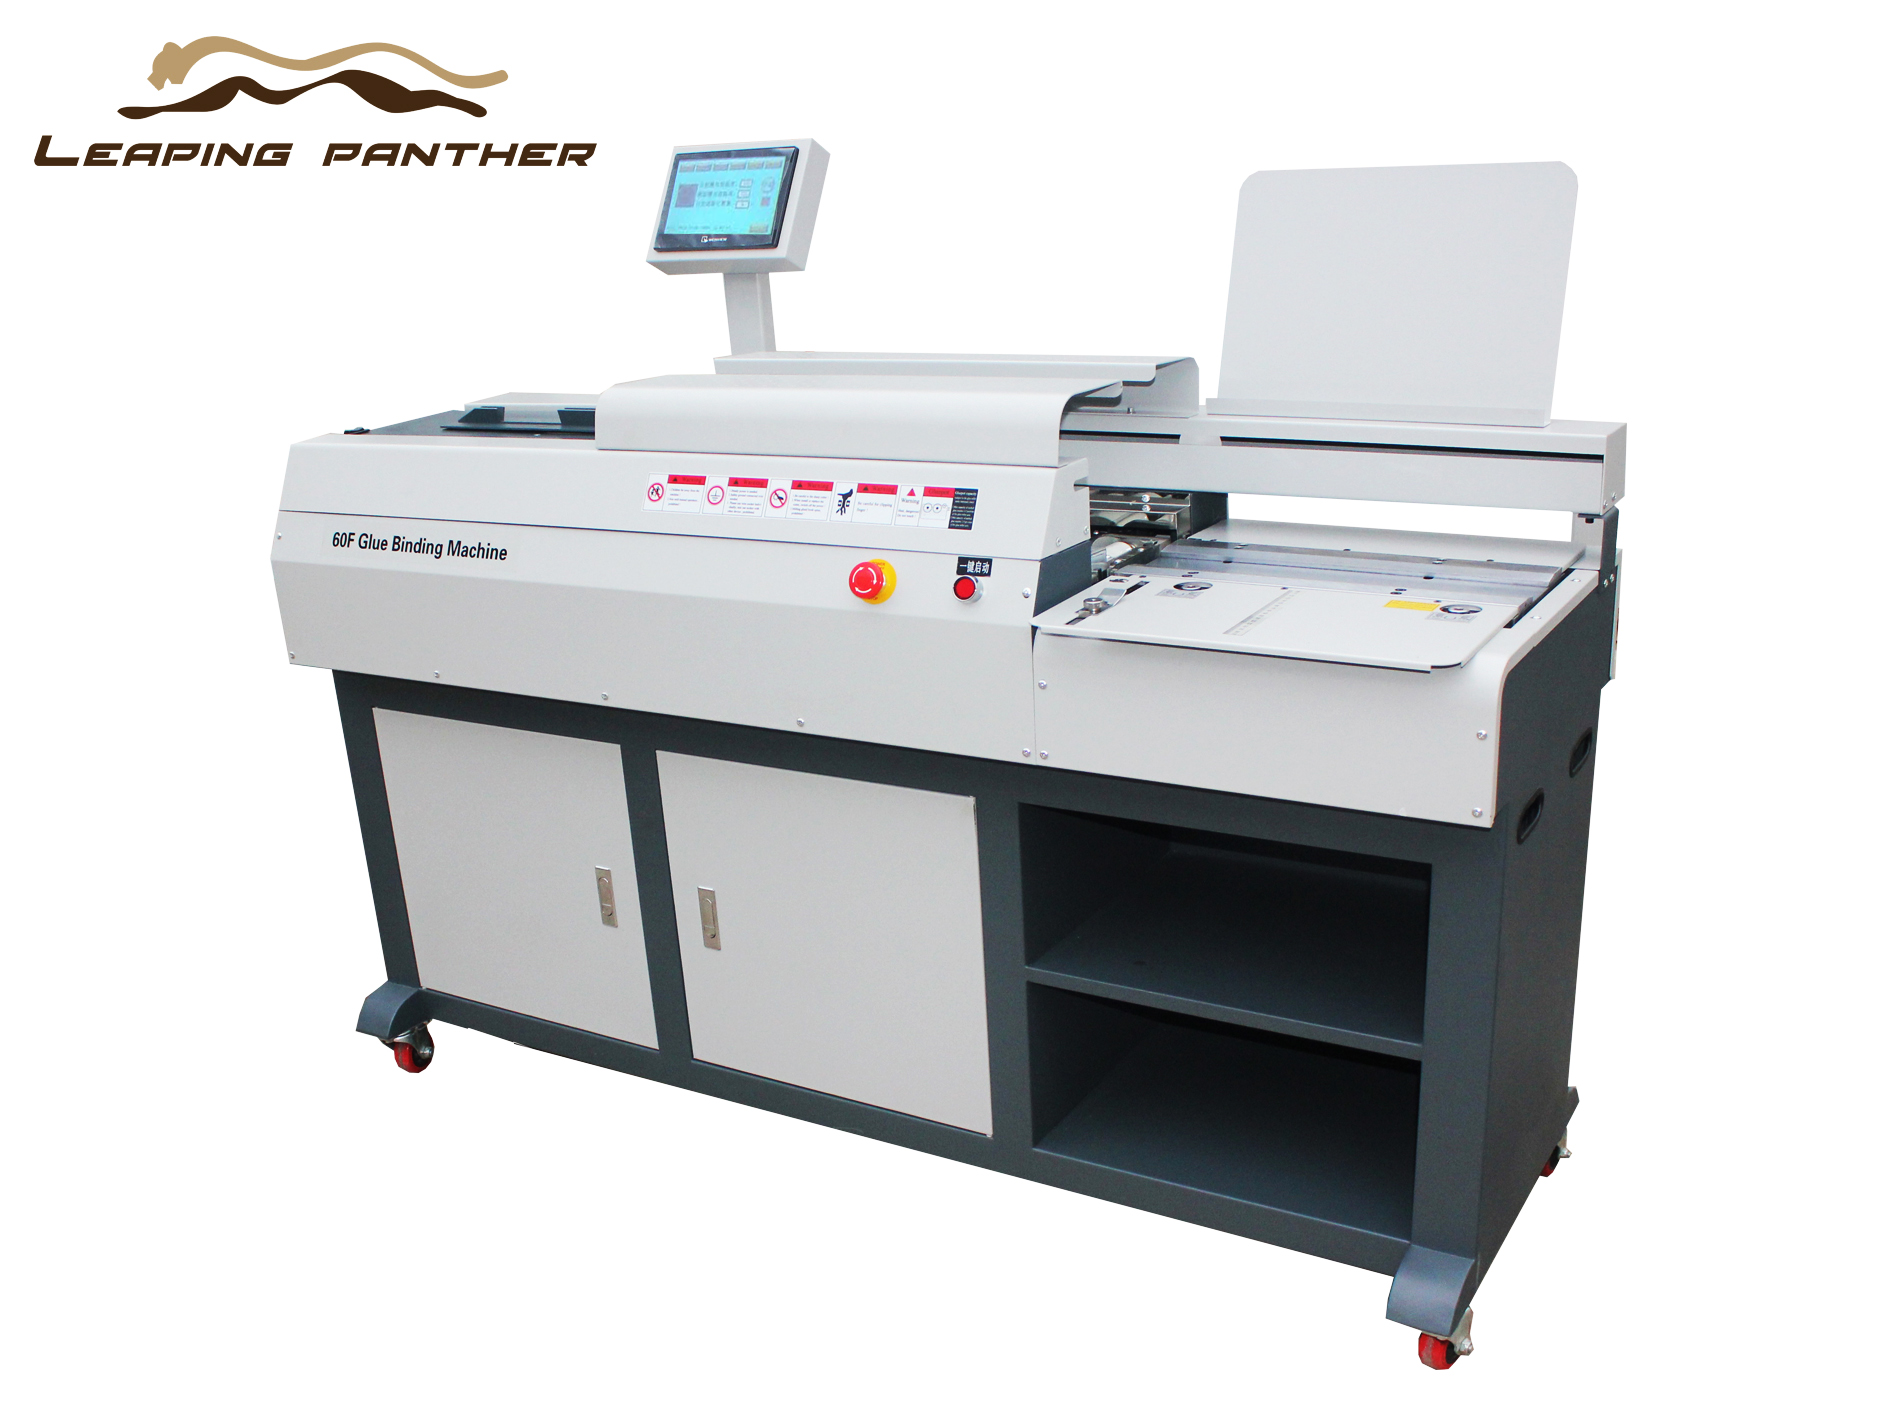 Panas Mencair Lem Book Binding Machine